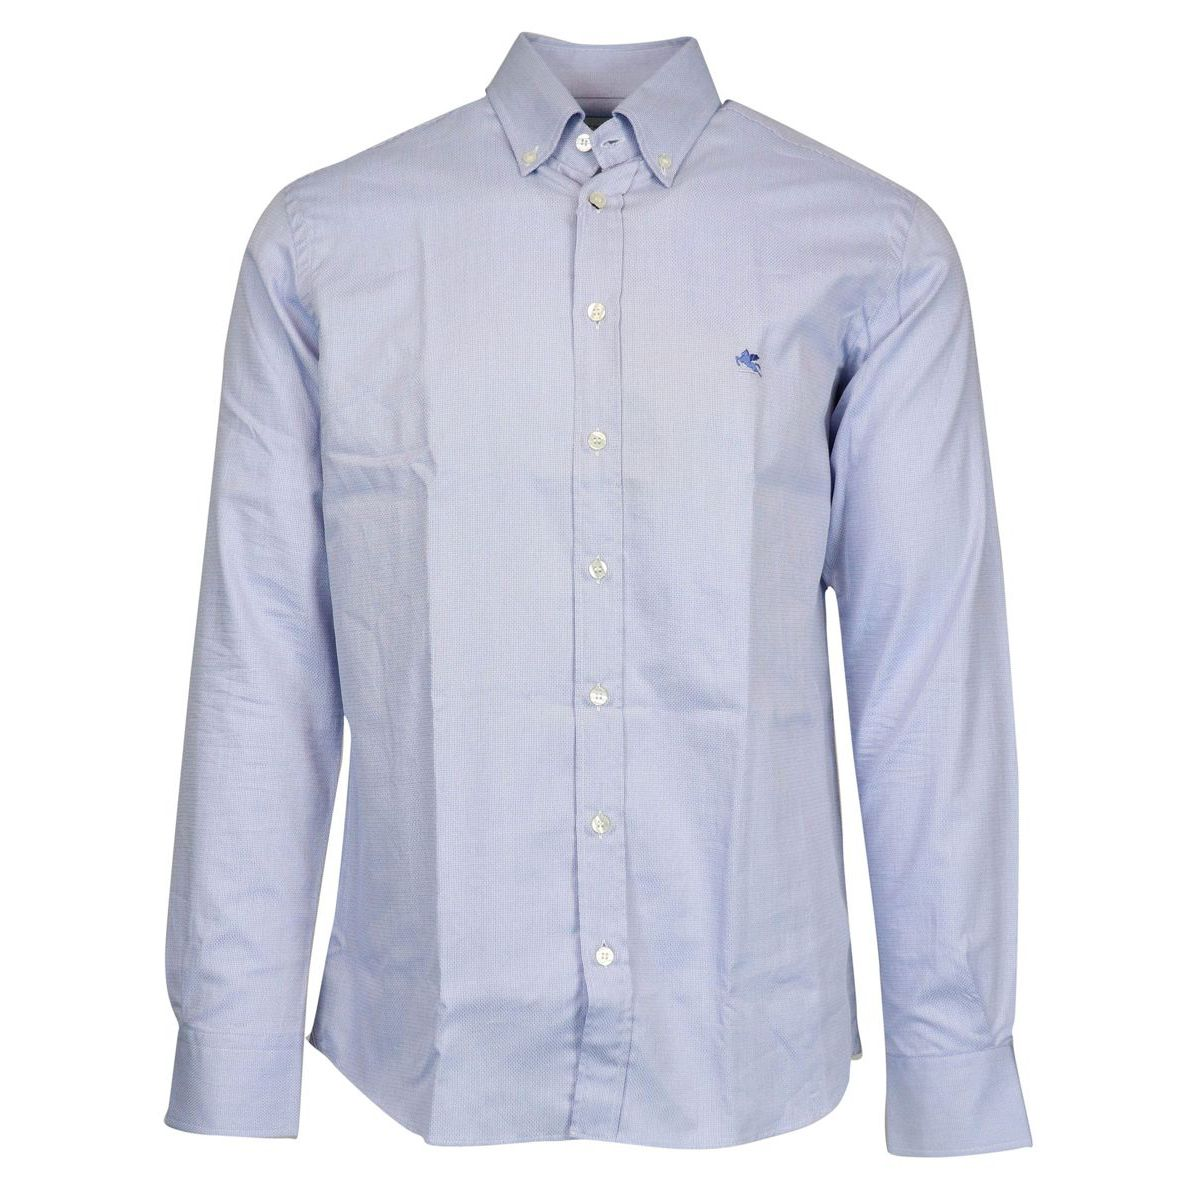 Regular button down cotton shirt with logo Heavenly Etro